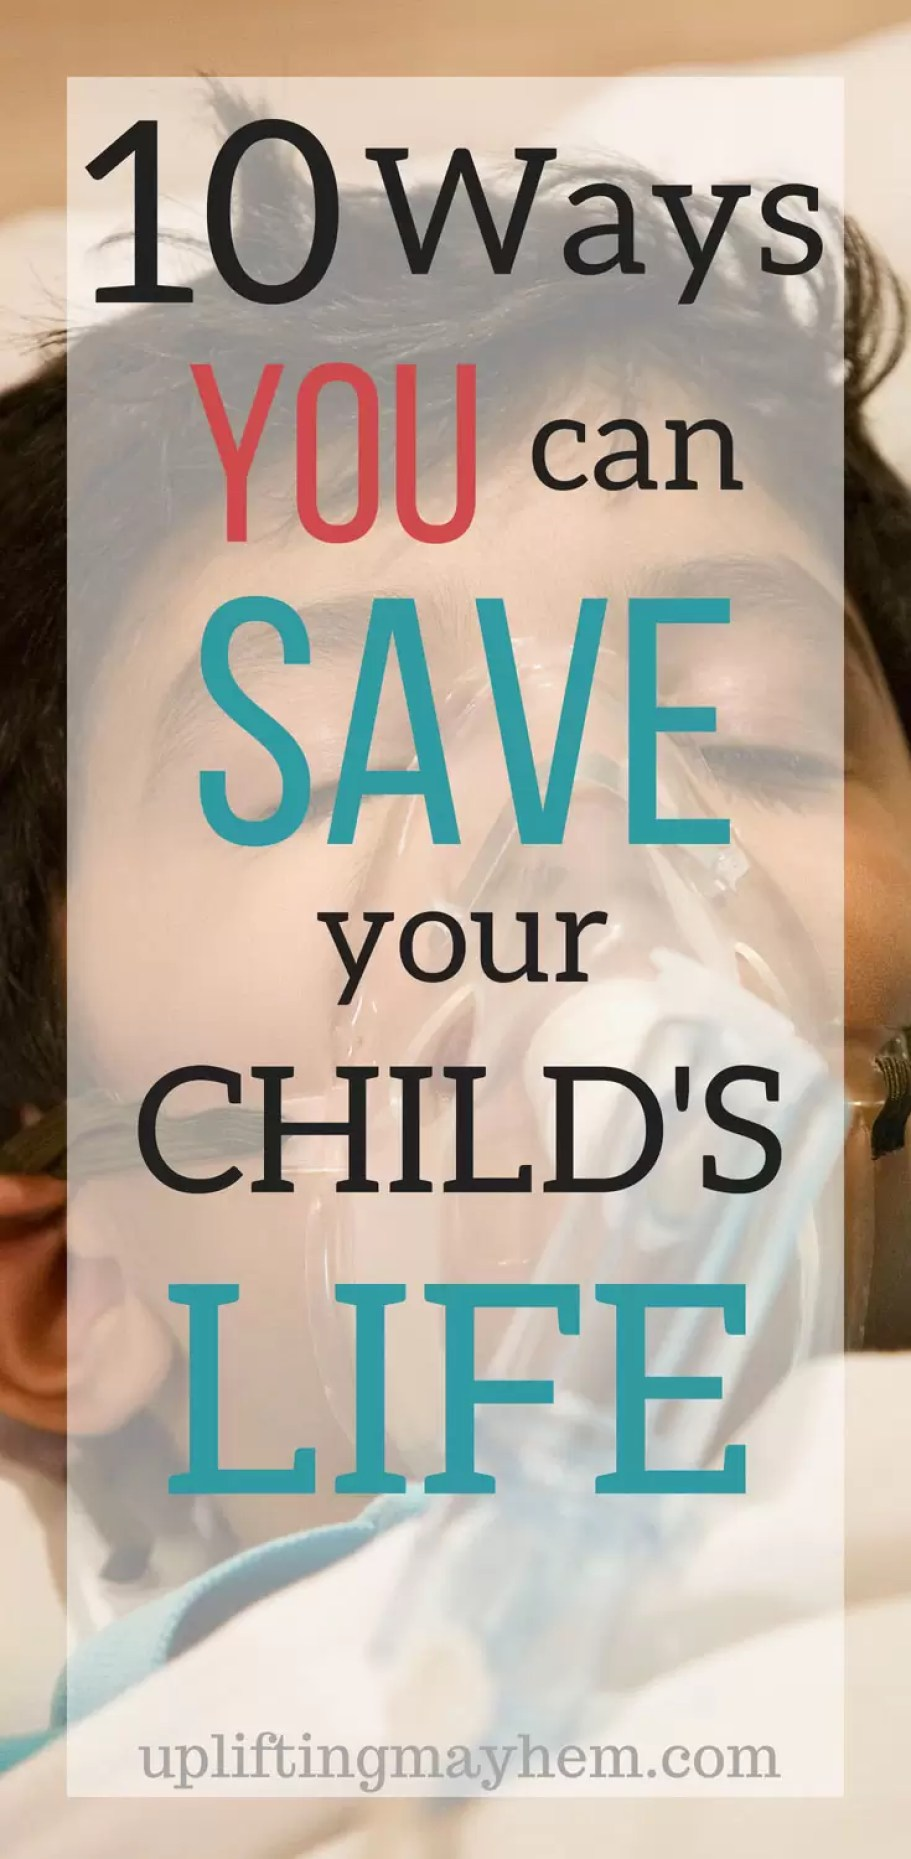 Guidance for drowning, child CPR, resuscitation, bleeding, button battery ingestion, swallowing poison, button batteries or magnets.